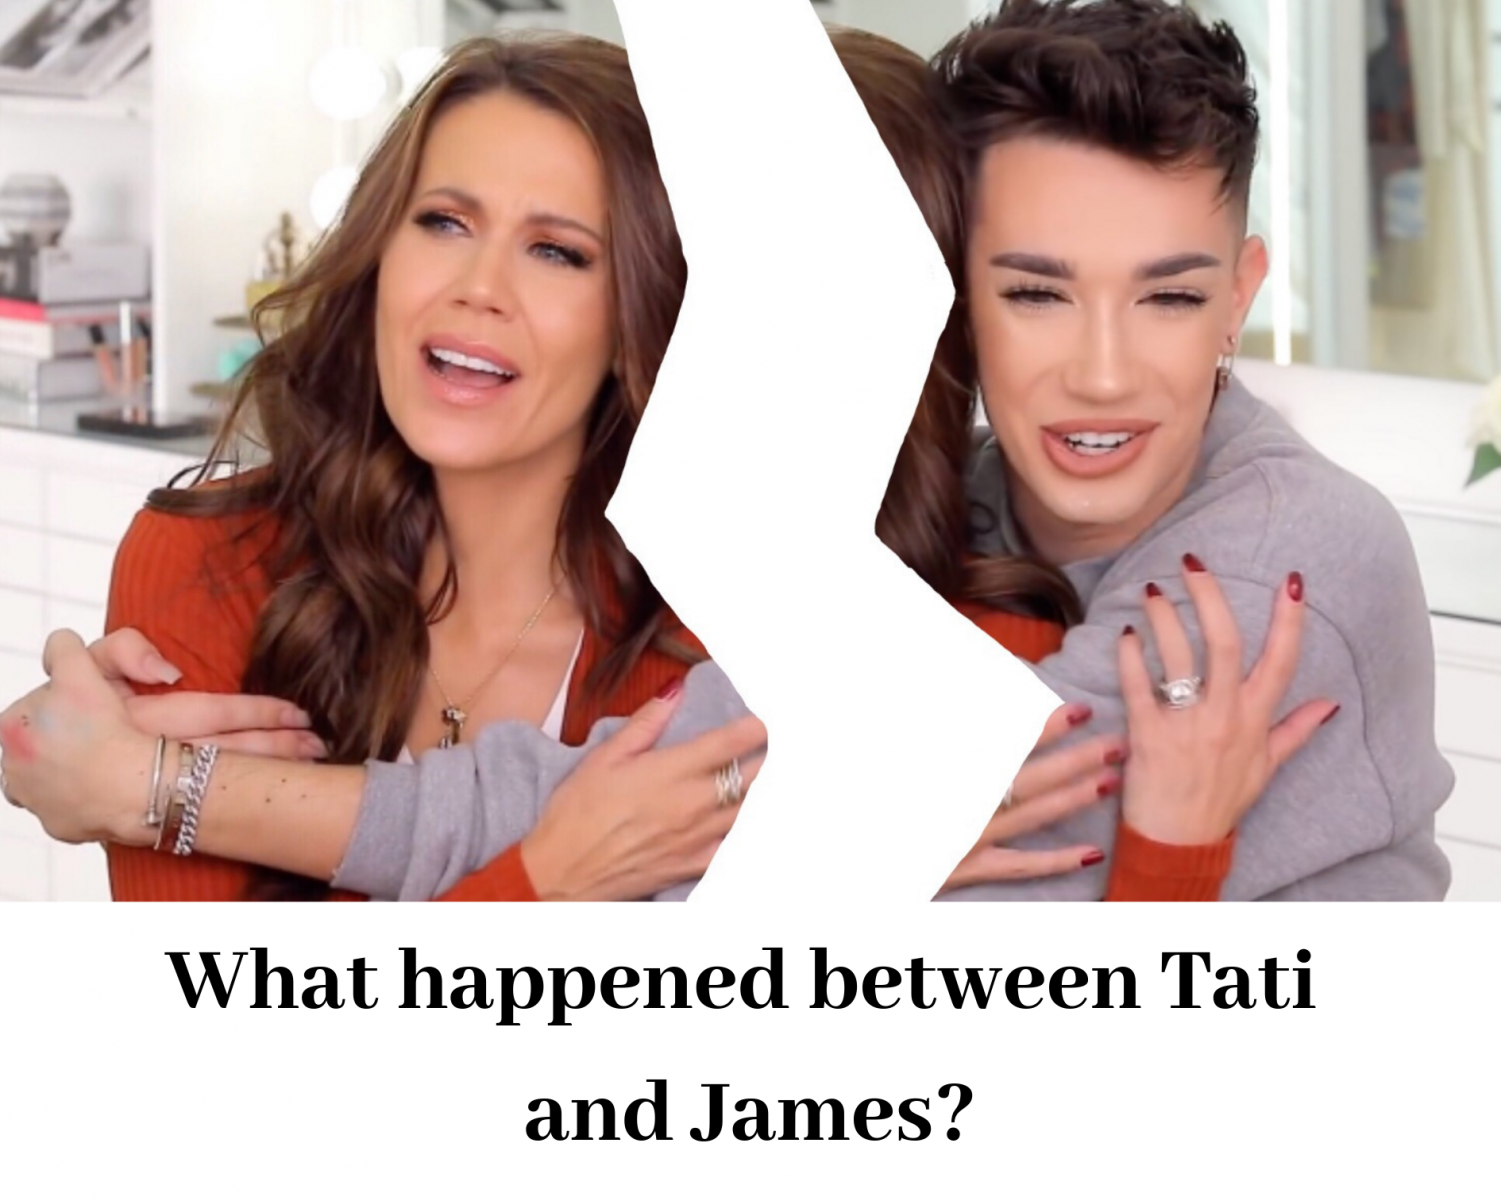 Tati Westbrook's recent video exposing James Charles has divided the beauty community.